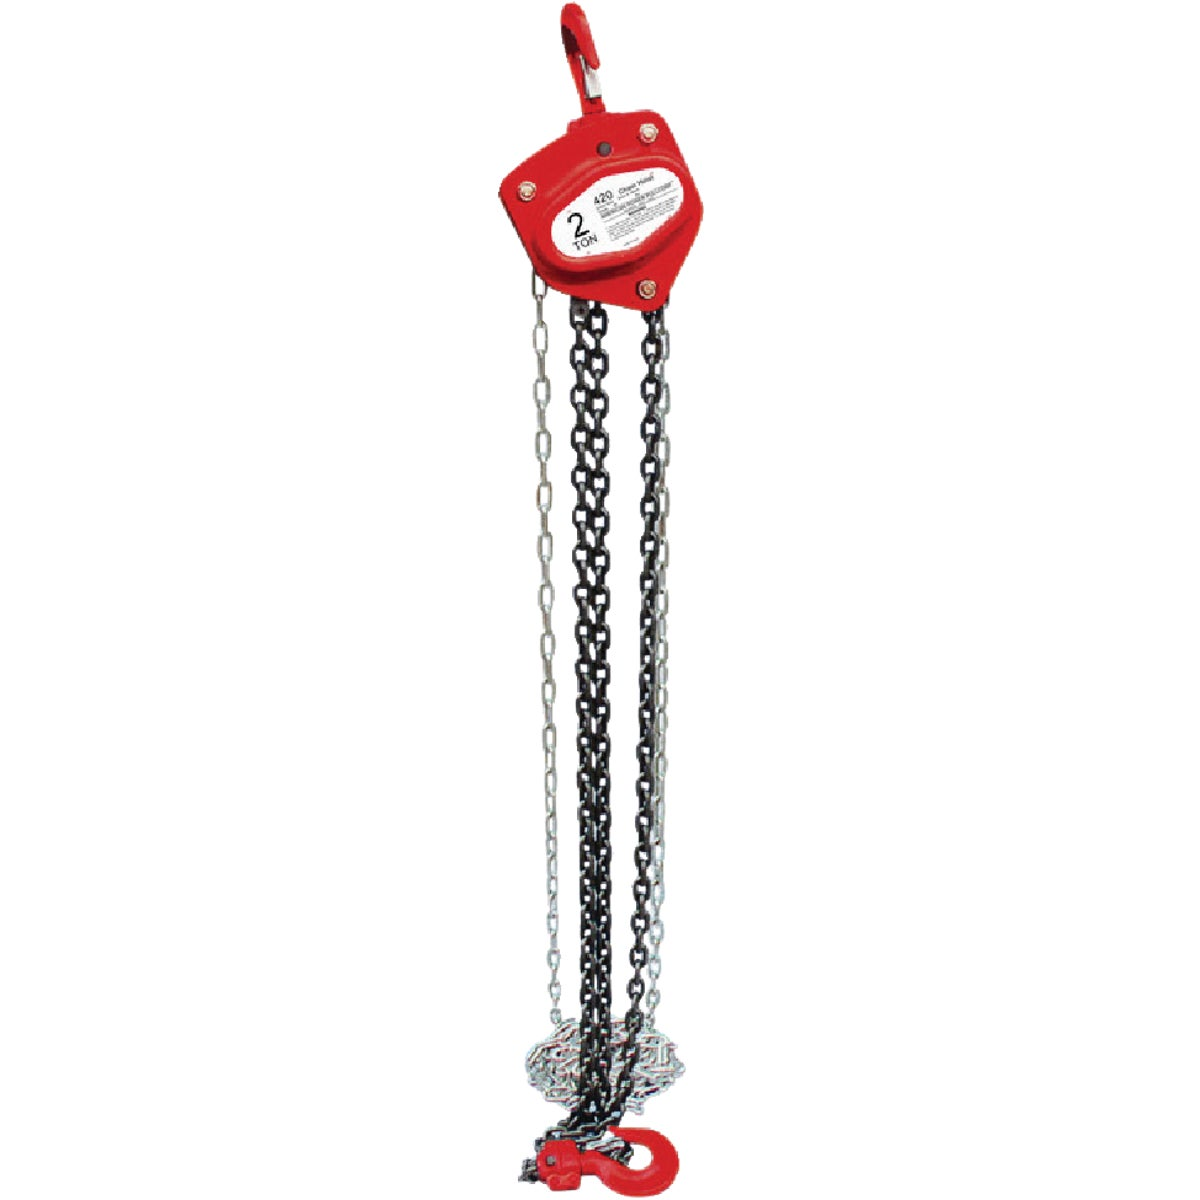 2 TON CHAIN BLOCK LIFT - 48520 by Pull R Holdings